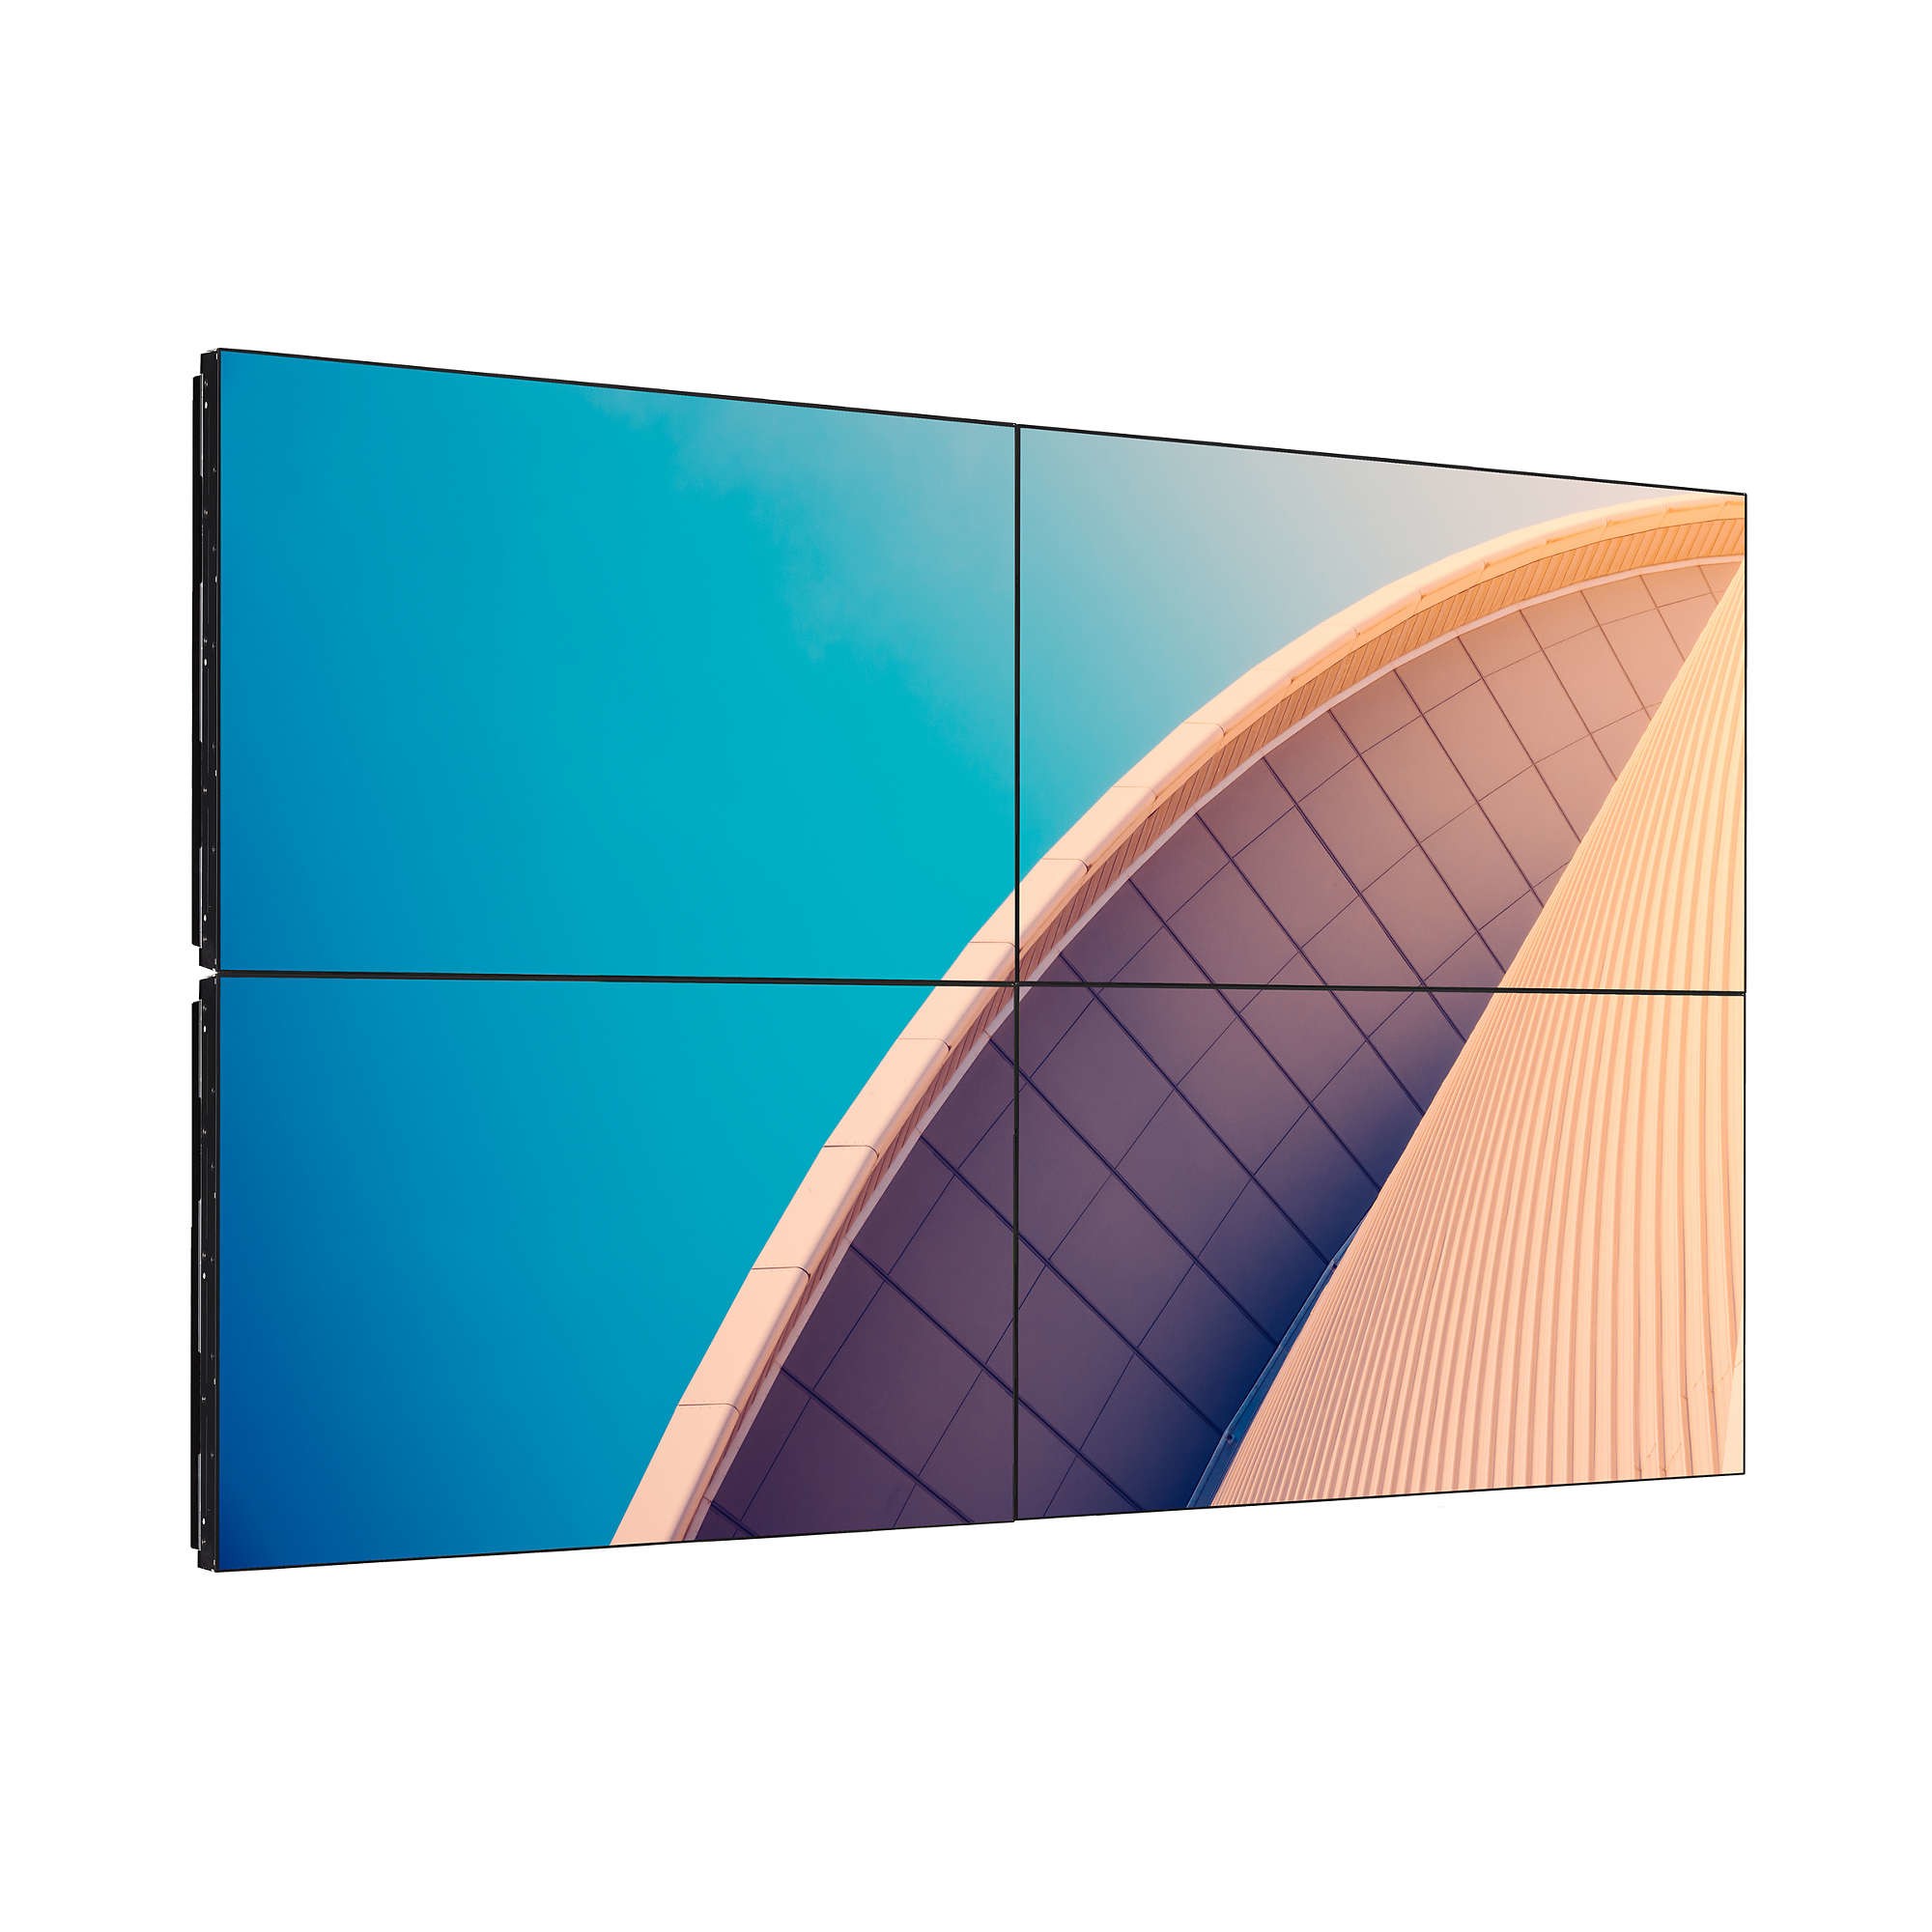 PHILIPS - Signage Solutions X-Line 55BDL3107X 140 cm Full HD